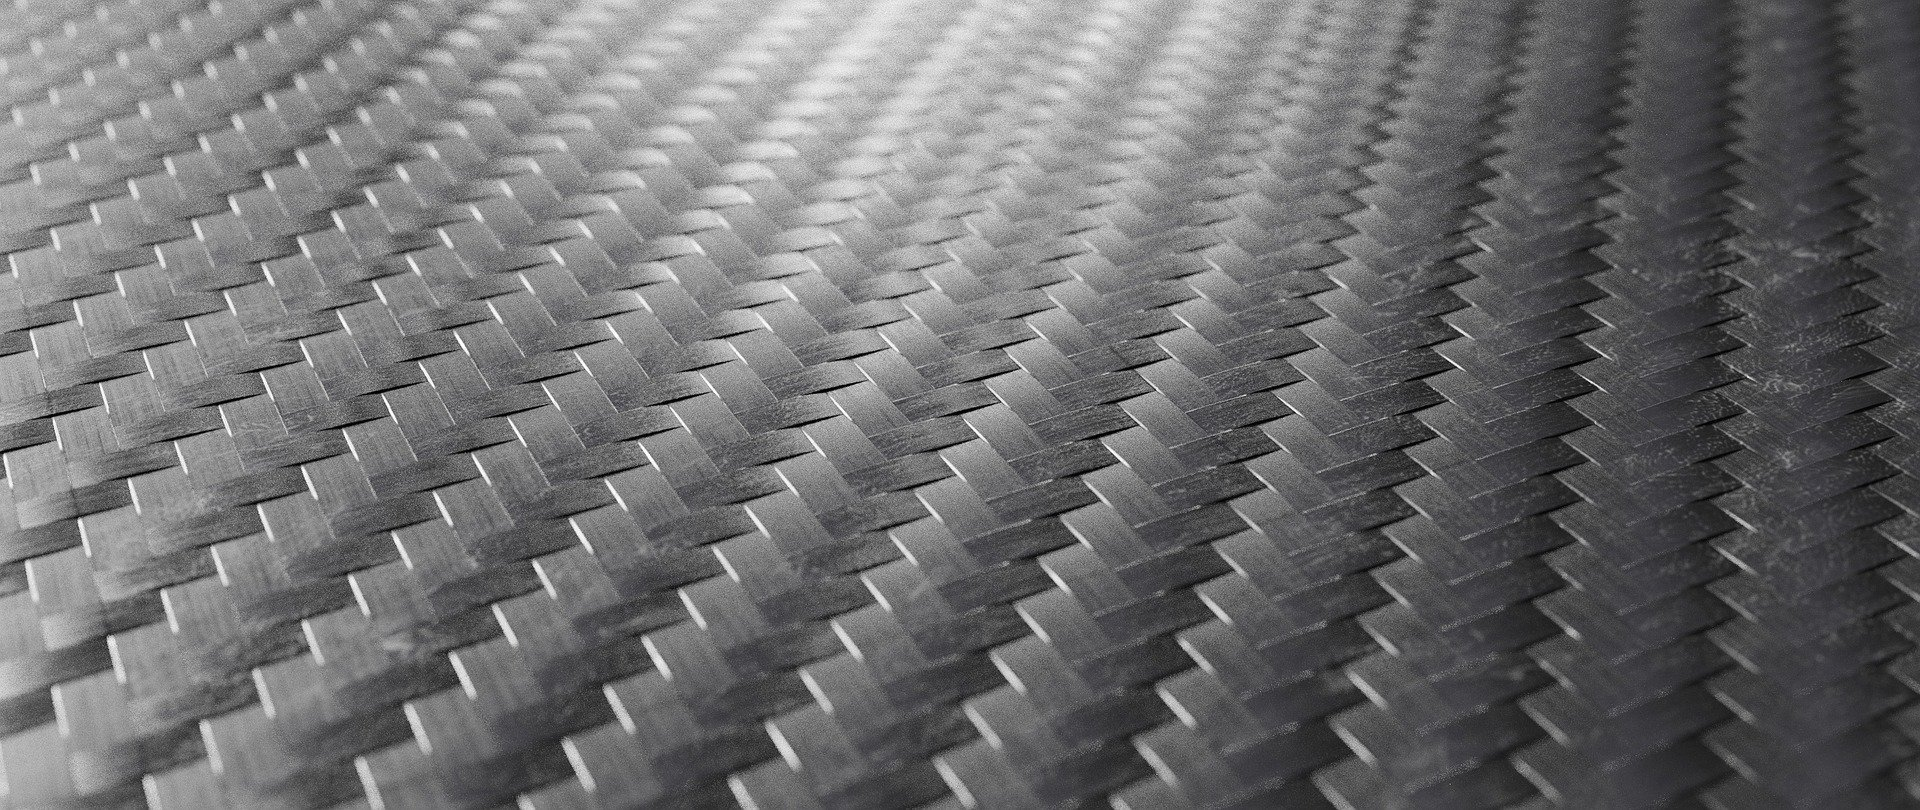 Designing with Composites for Industry